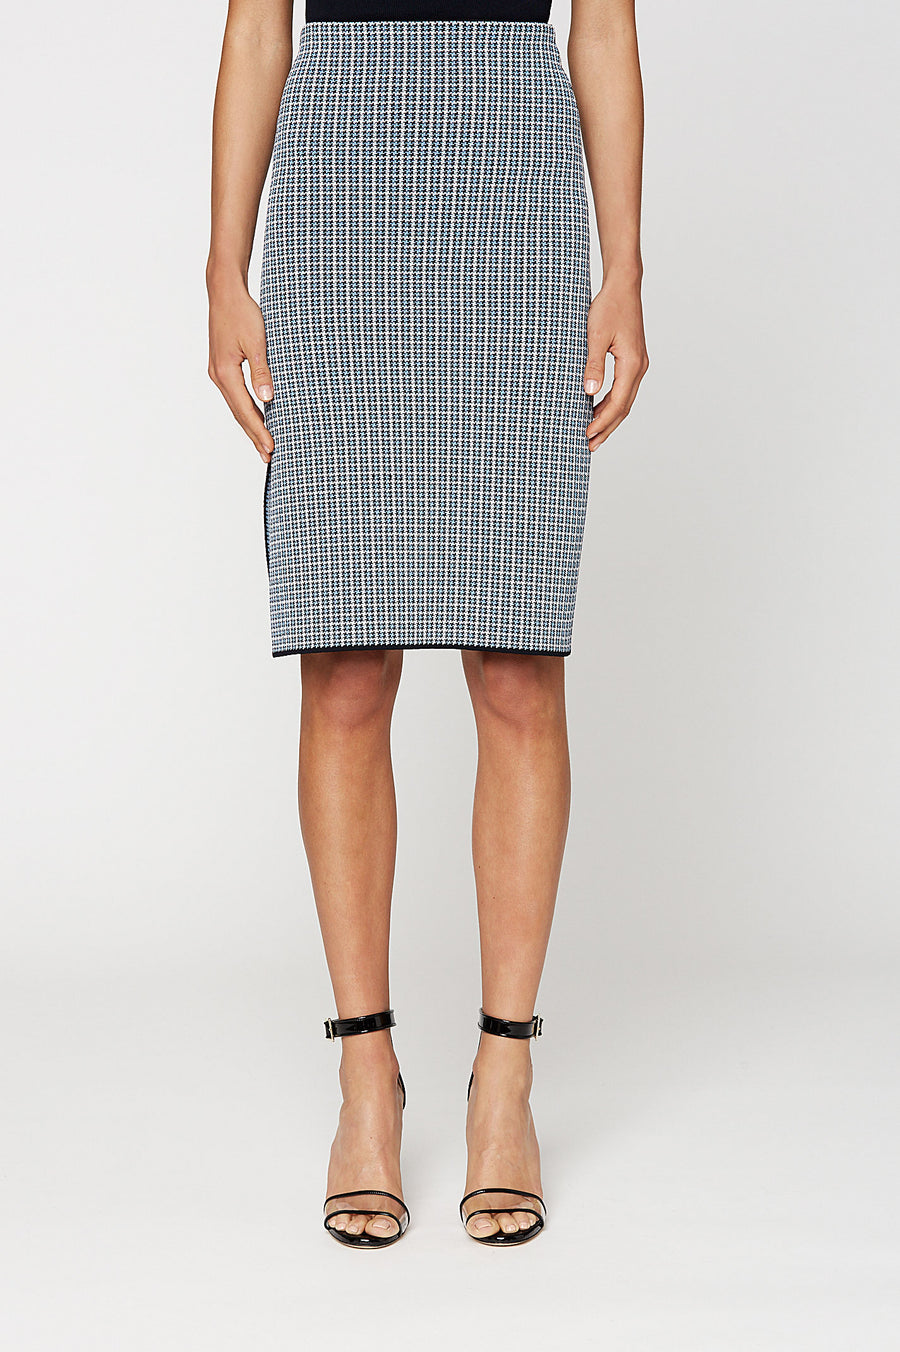 CREPE KNIT PLAID VENT SKIRT, PALE BLUE color